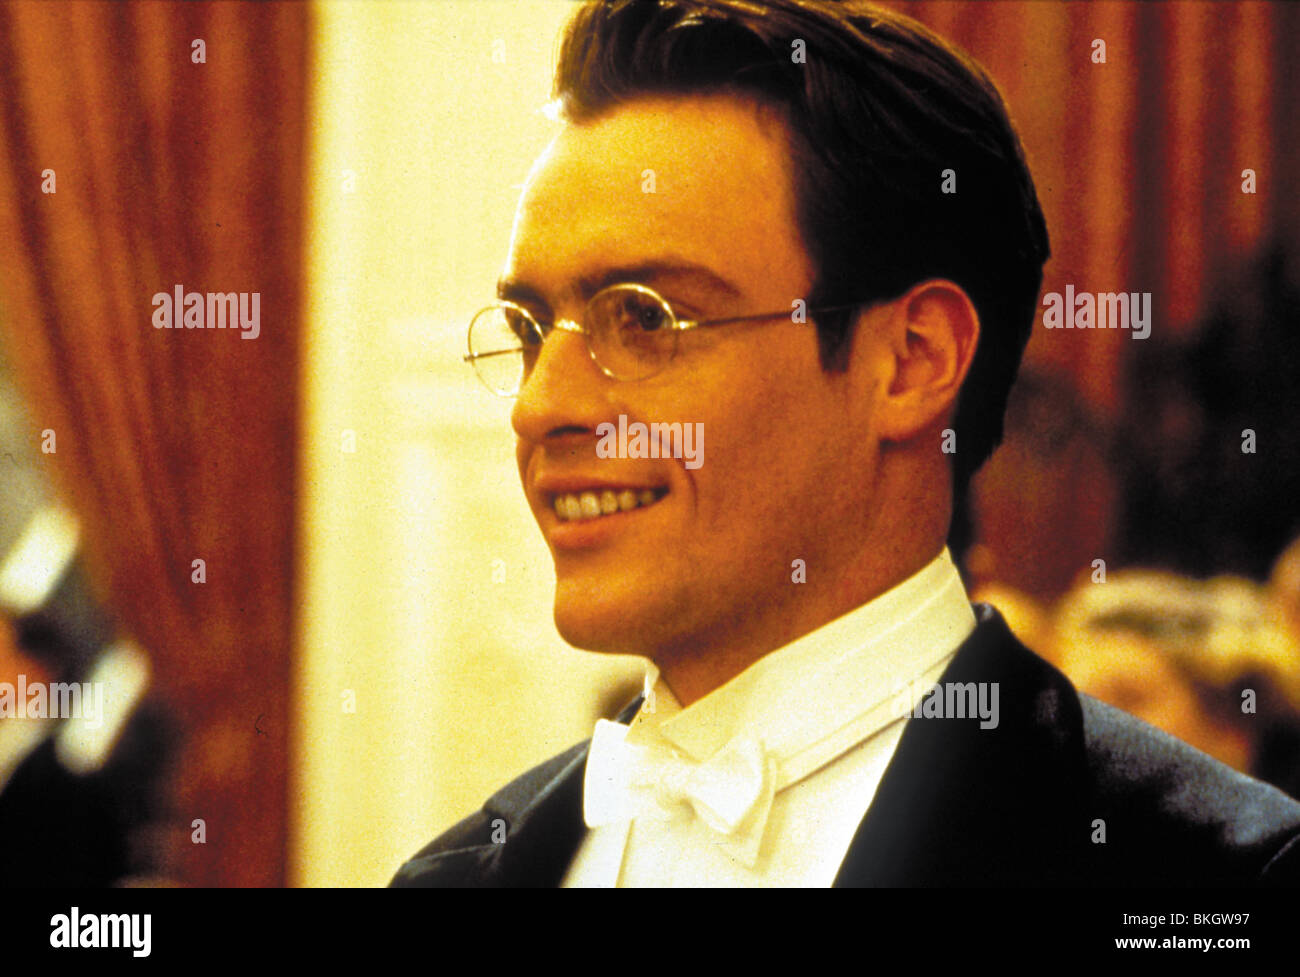 PHOTOGRAPHING FAIRIES (1997) TOBY STEPHENS PHF 058 - Stock Image